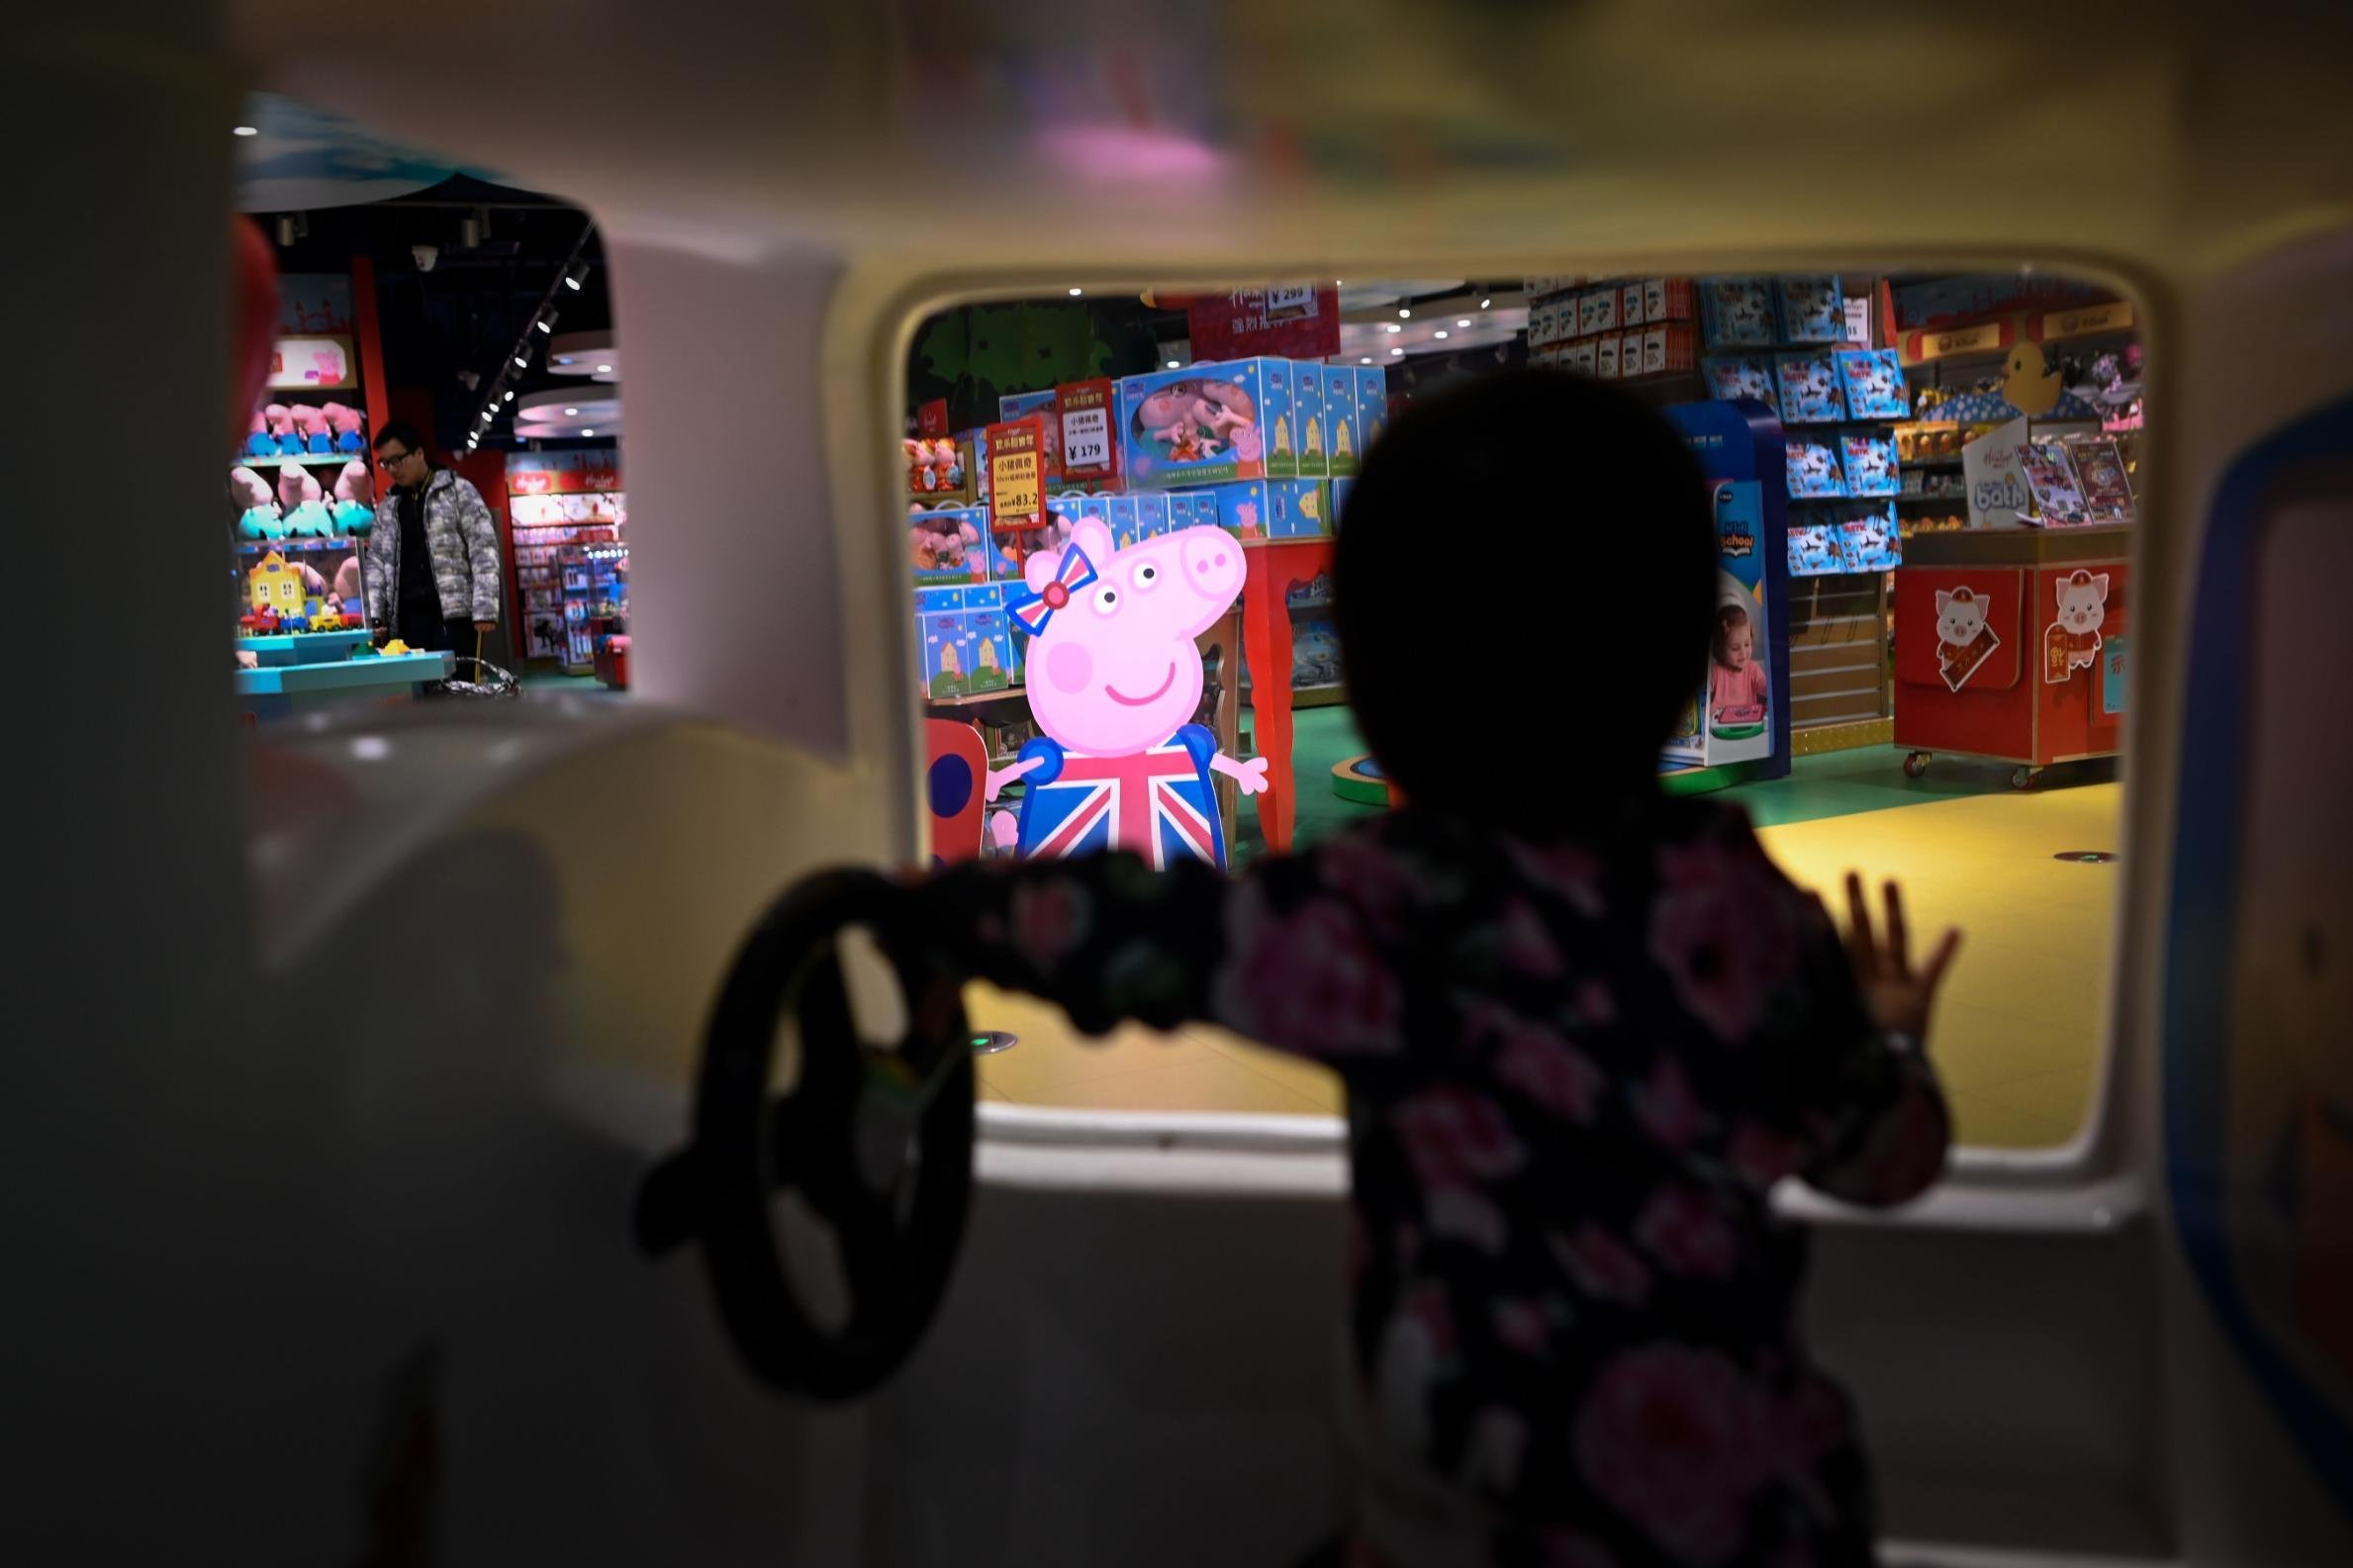 Hasbro strikes deal to buy Peppa Pig owner for $4 billion